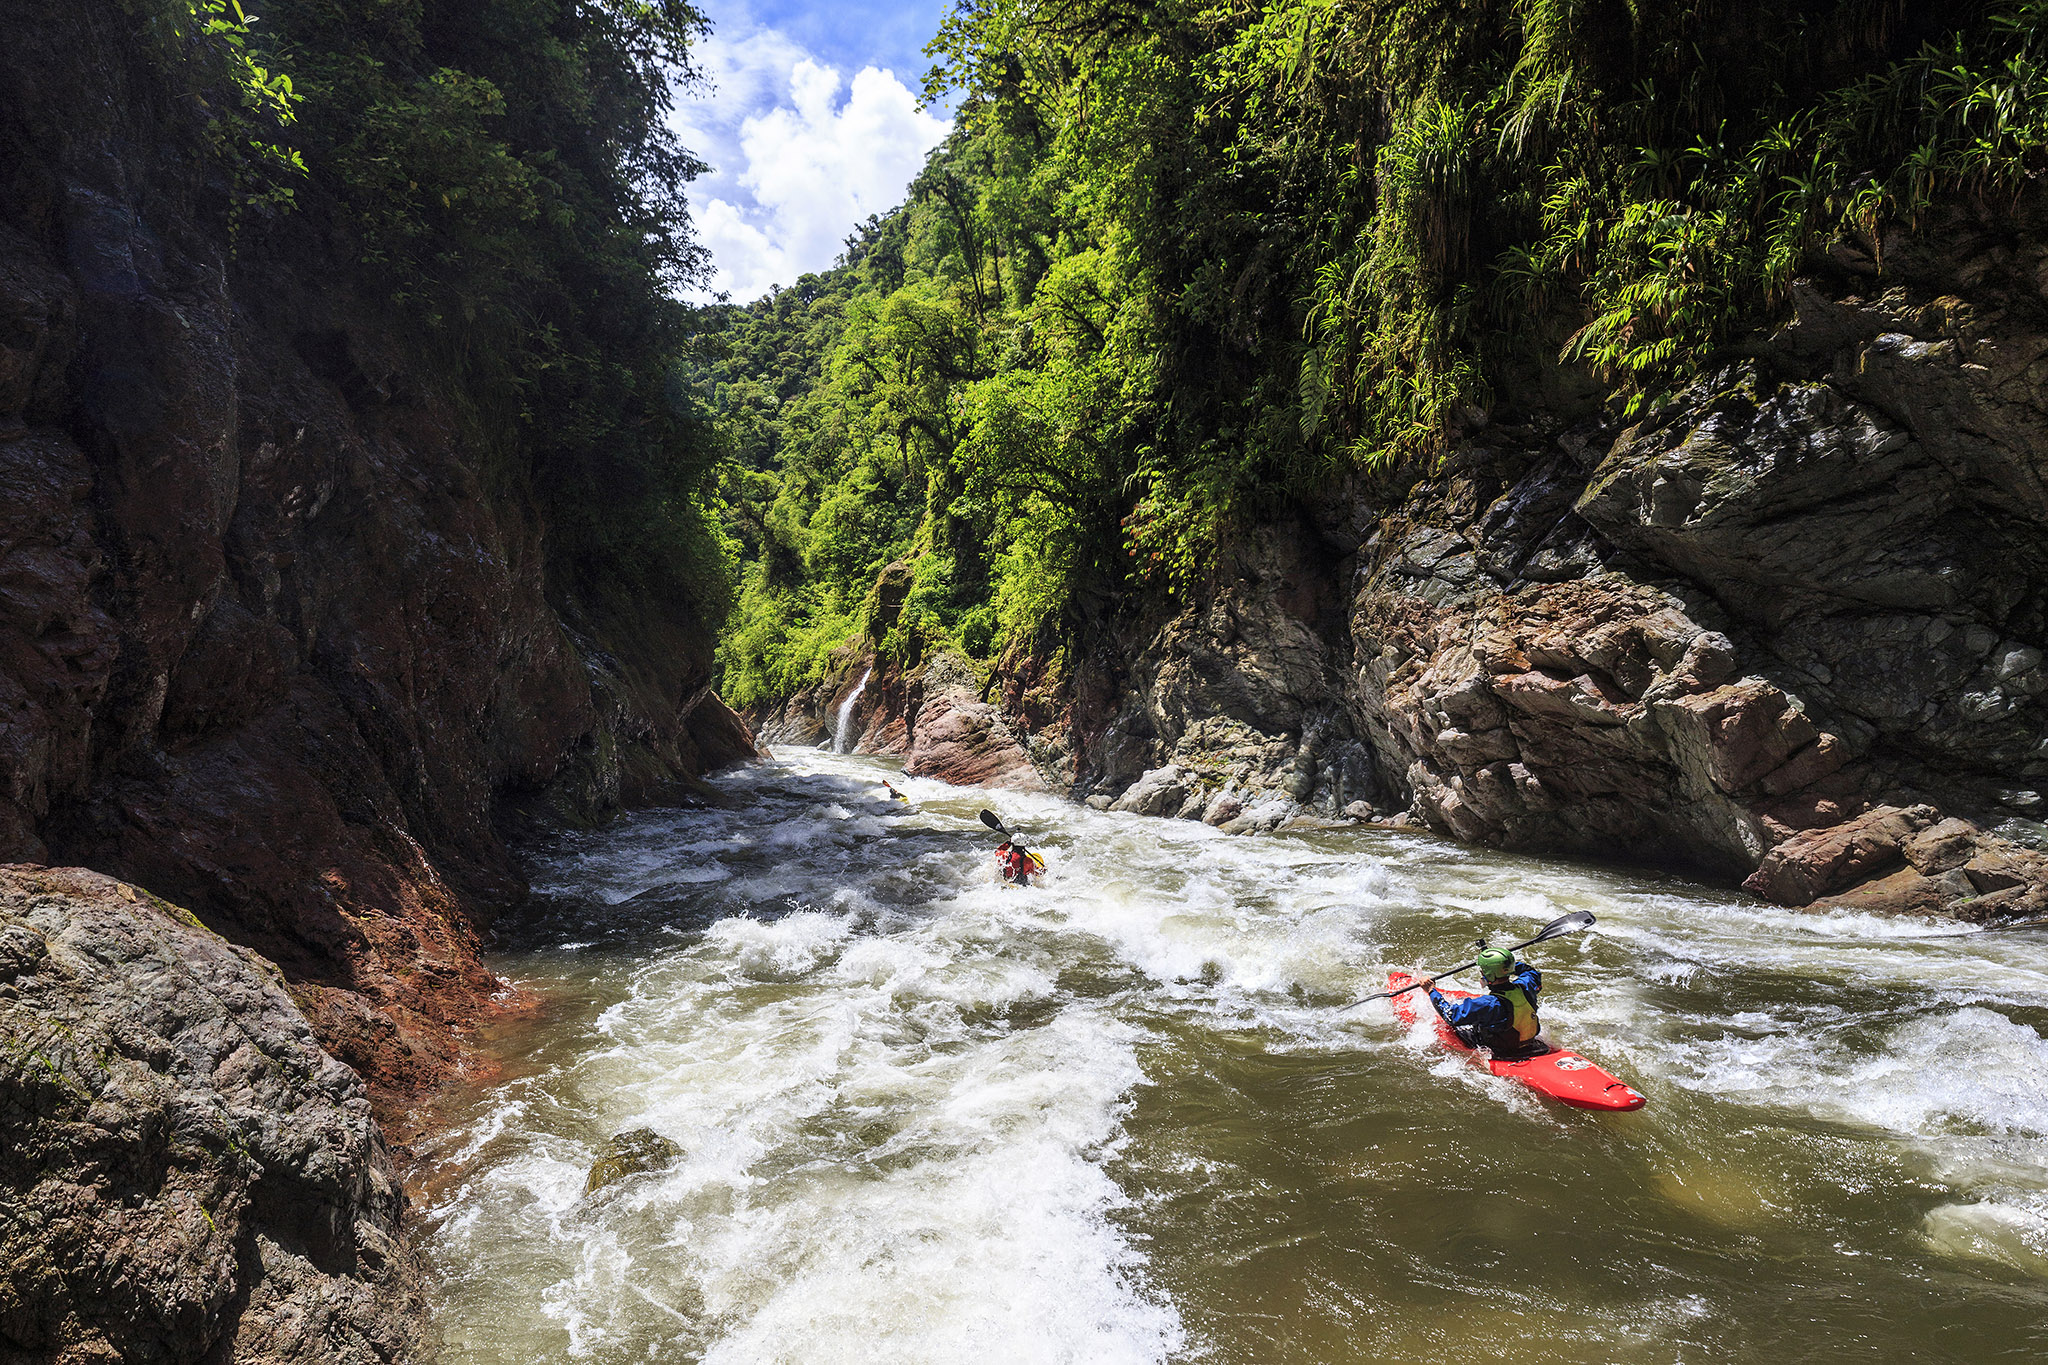 whitewater ecuador kayaking rivers tours guided outfitter .jpg